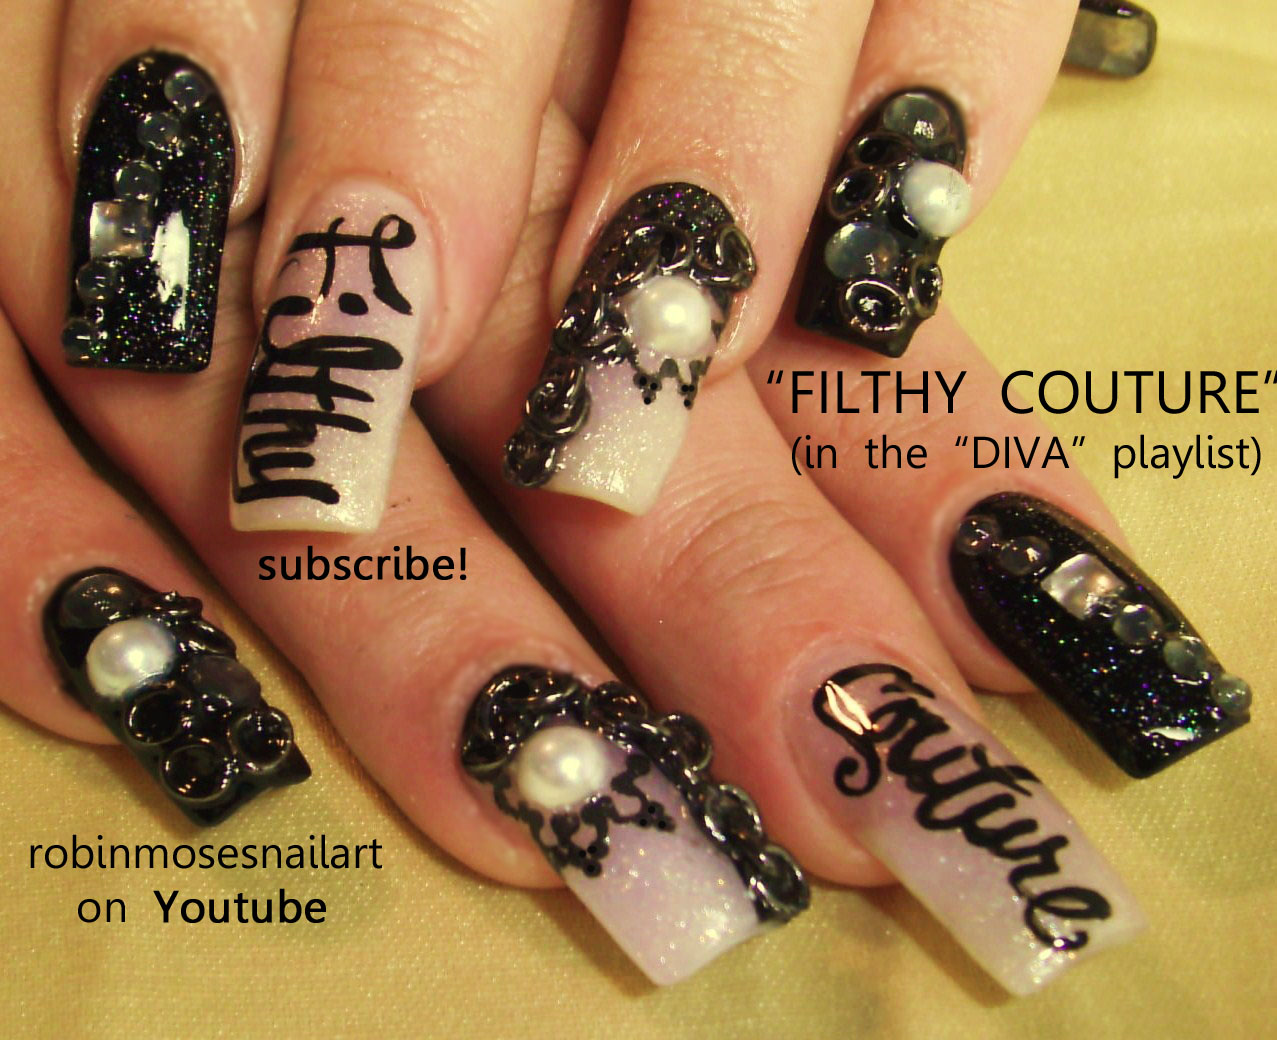 Nicki Minaj Roman In Moscow Nails Chain Filthy Couture Diva Swag How To Use Jumprings Stupid Hoe